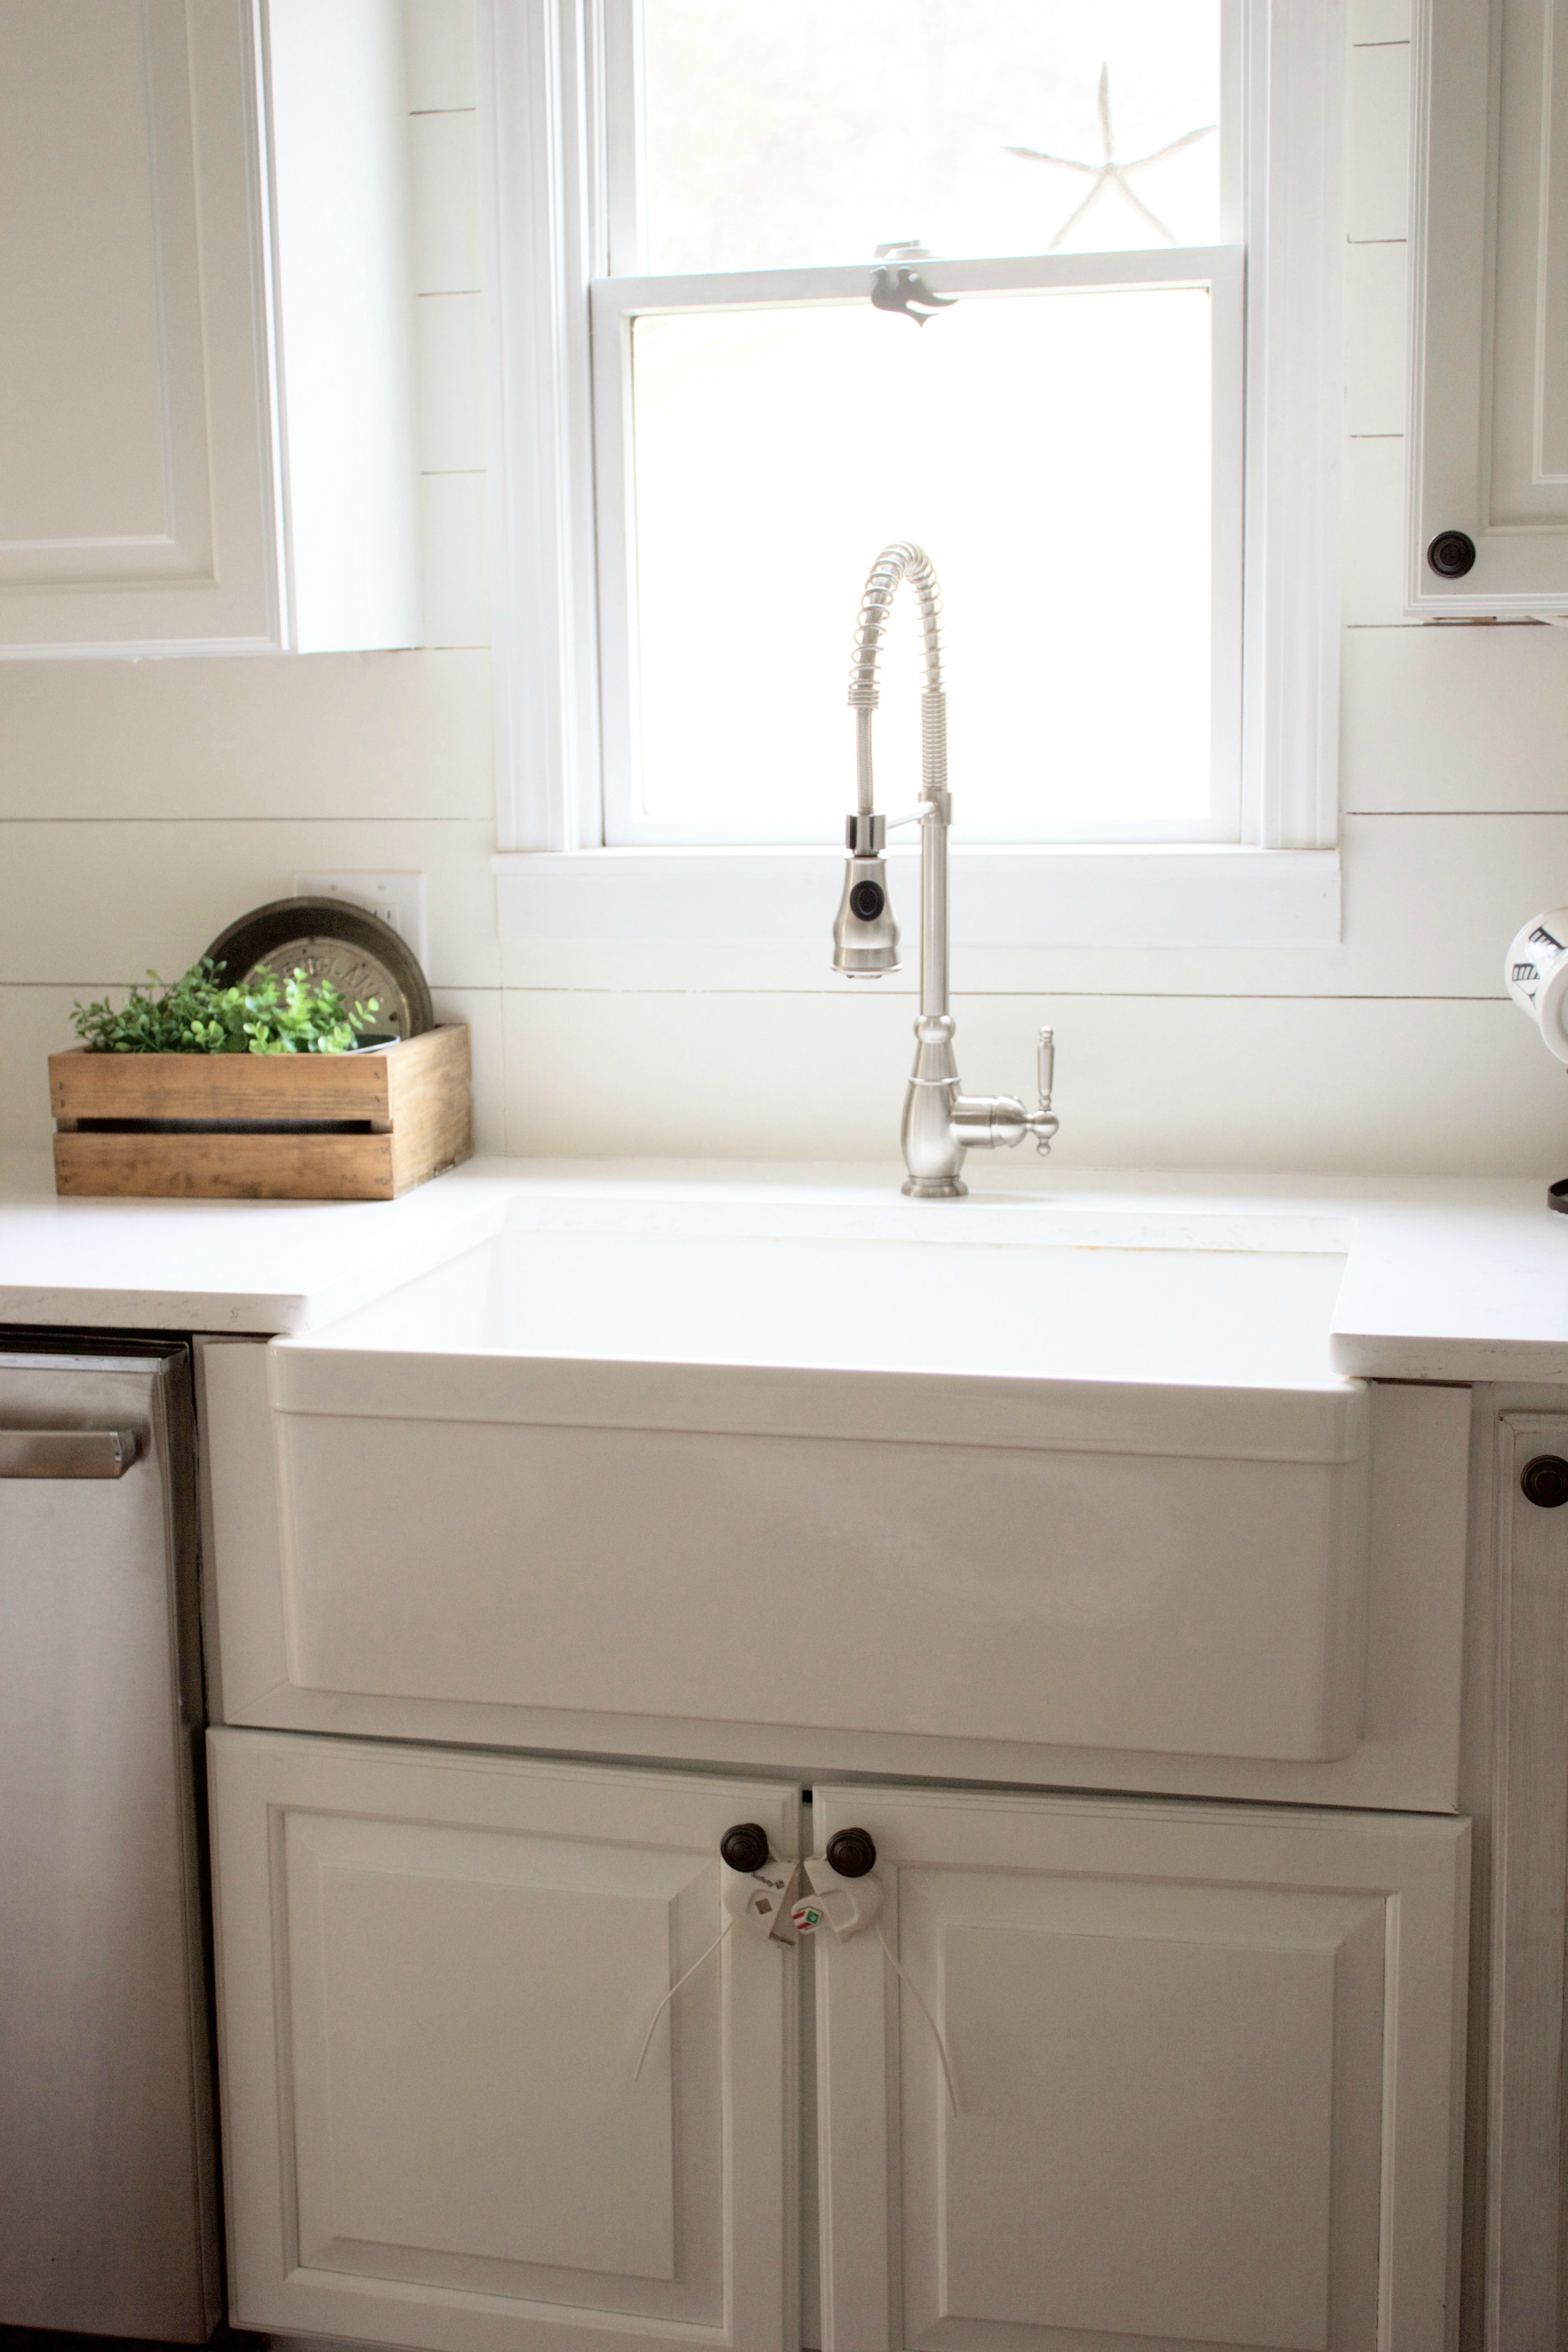 Looking For A Farmhouse Sink For Your Home? Check Out This List Of The Best